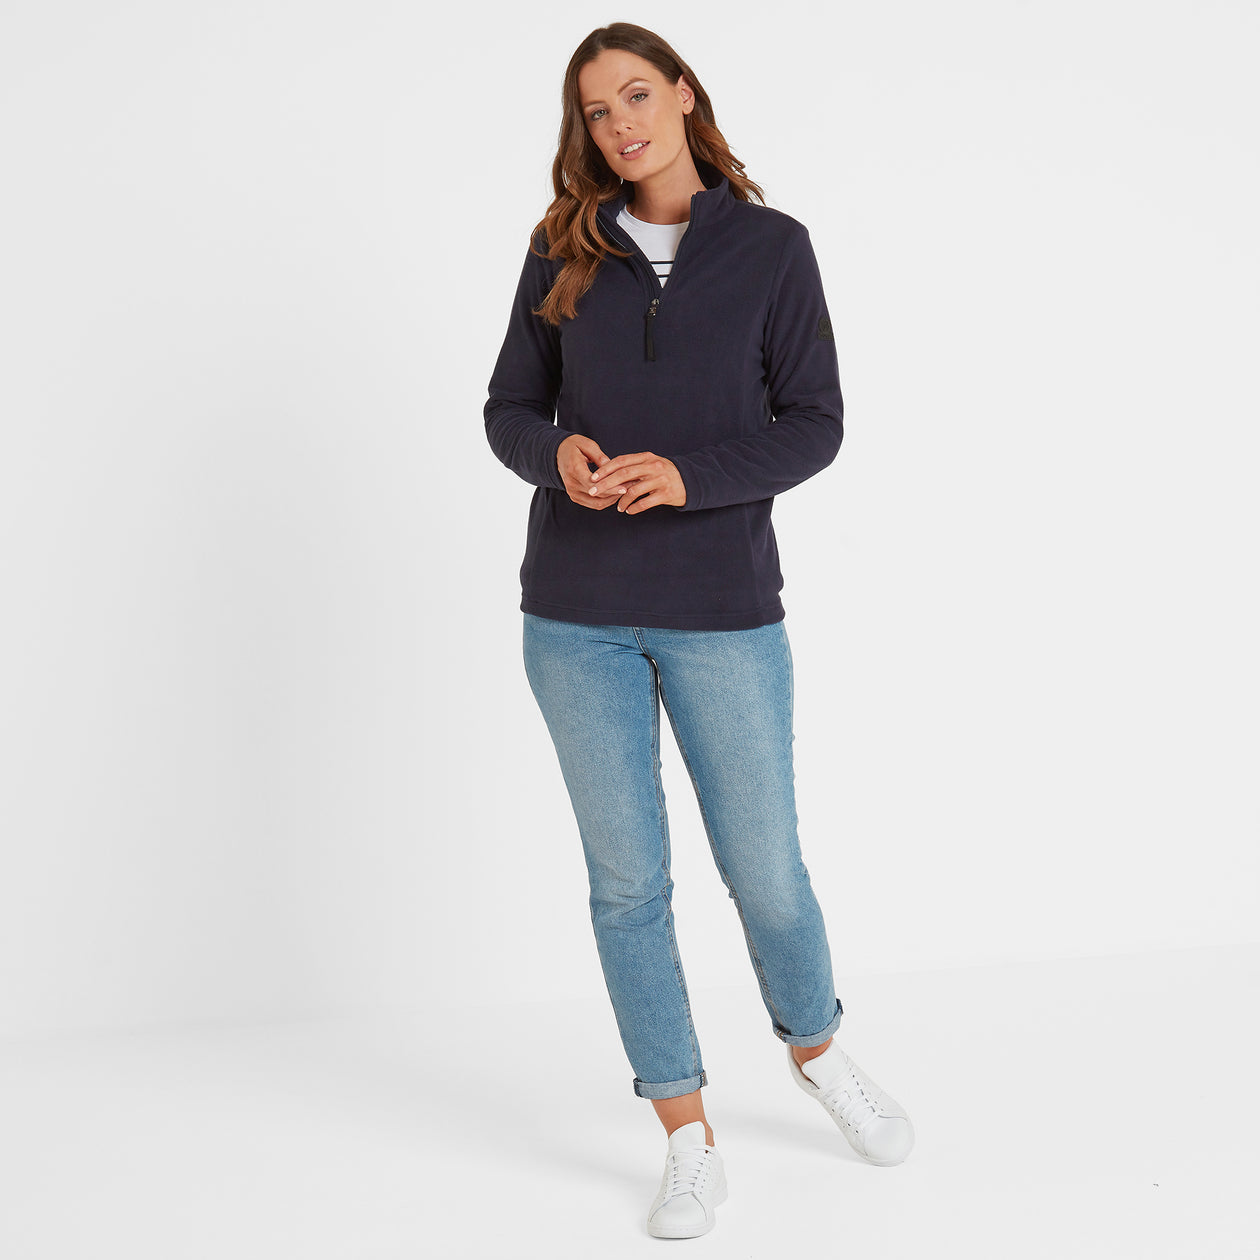 Shire Womens Fleece Zipneck - Navy image 4